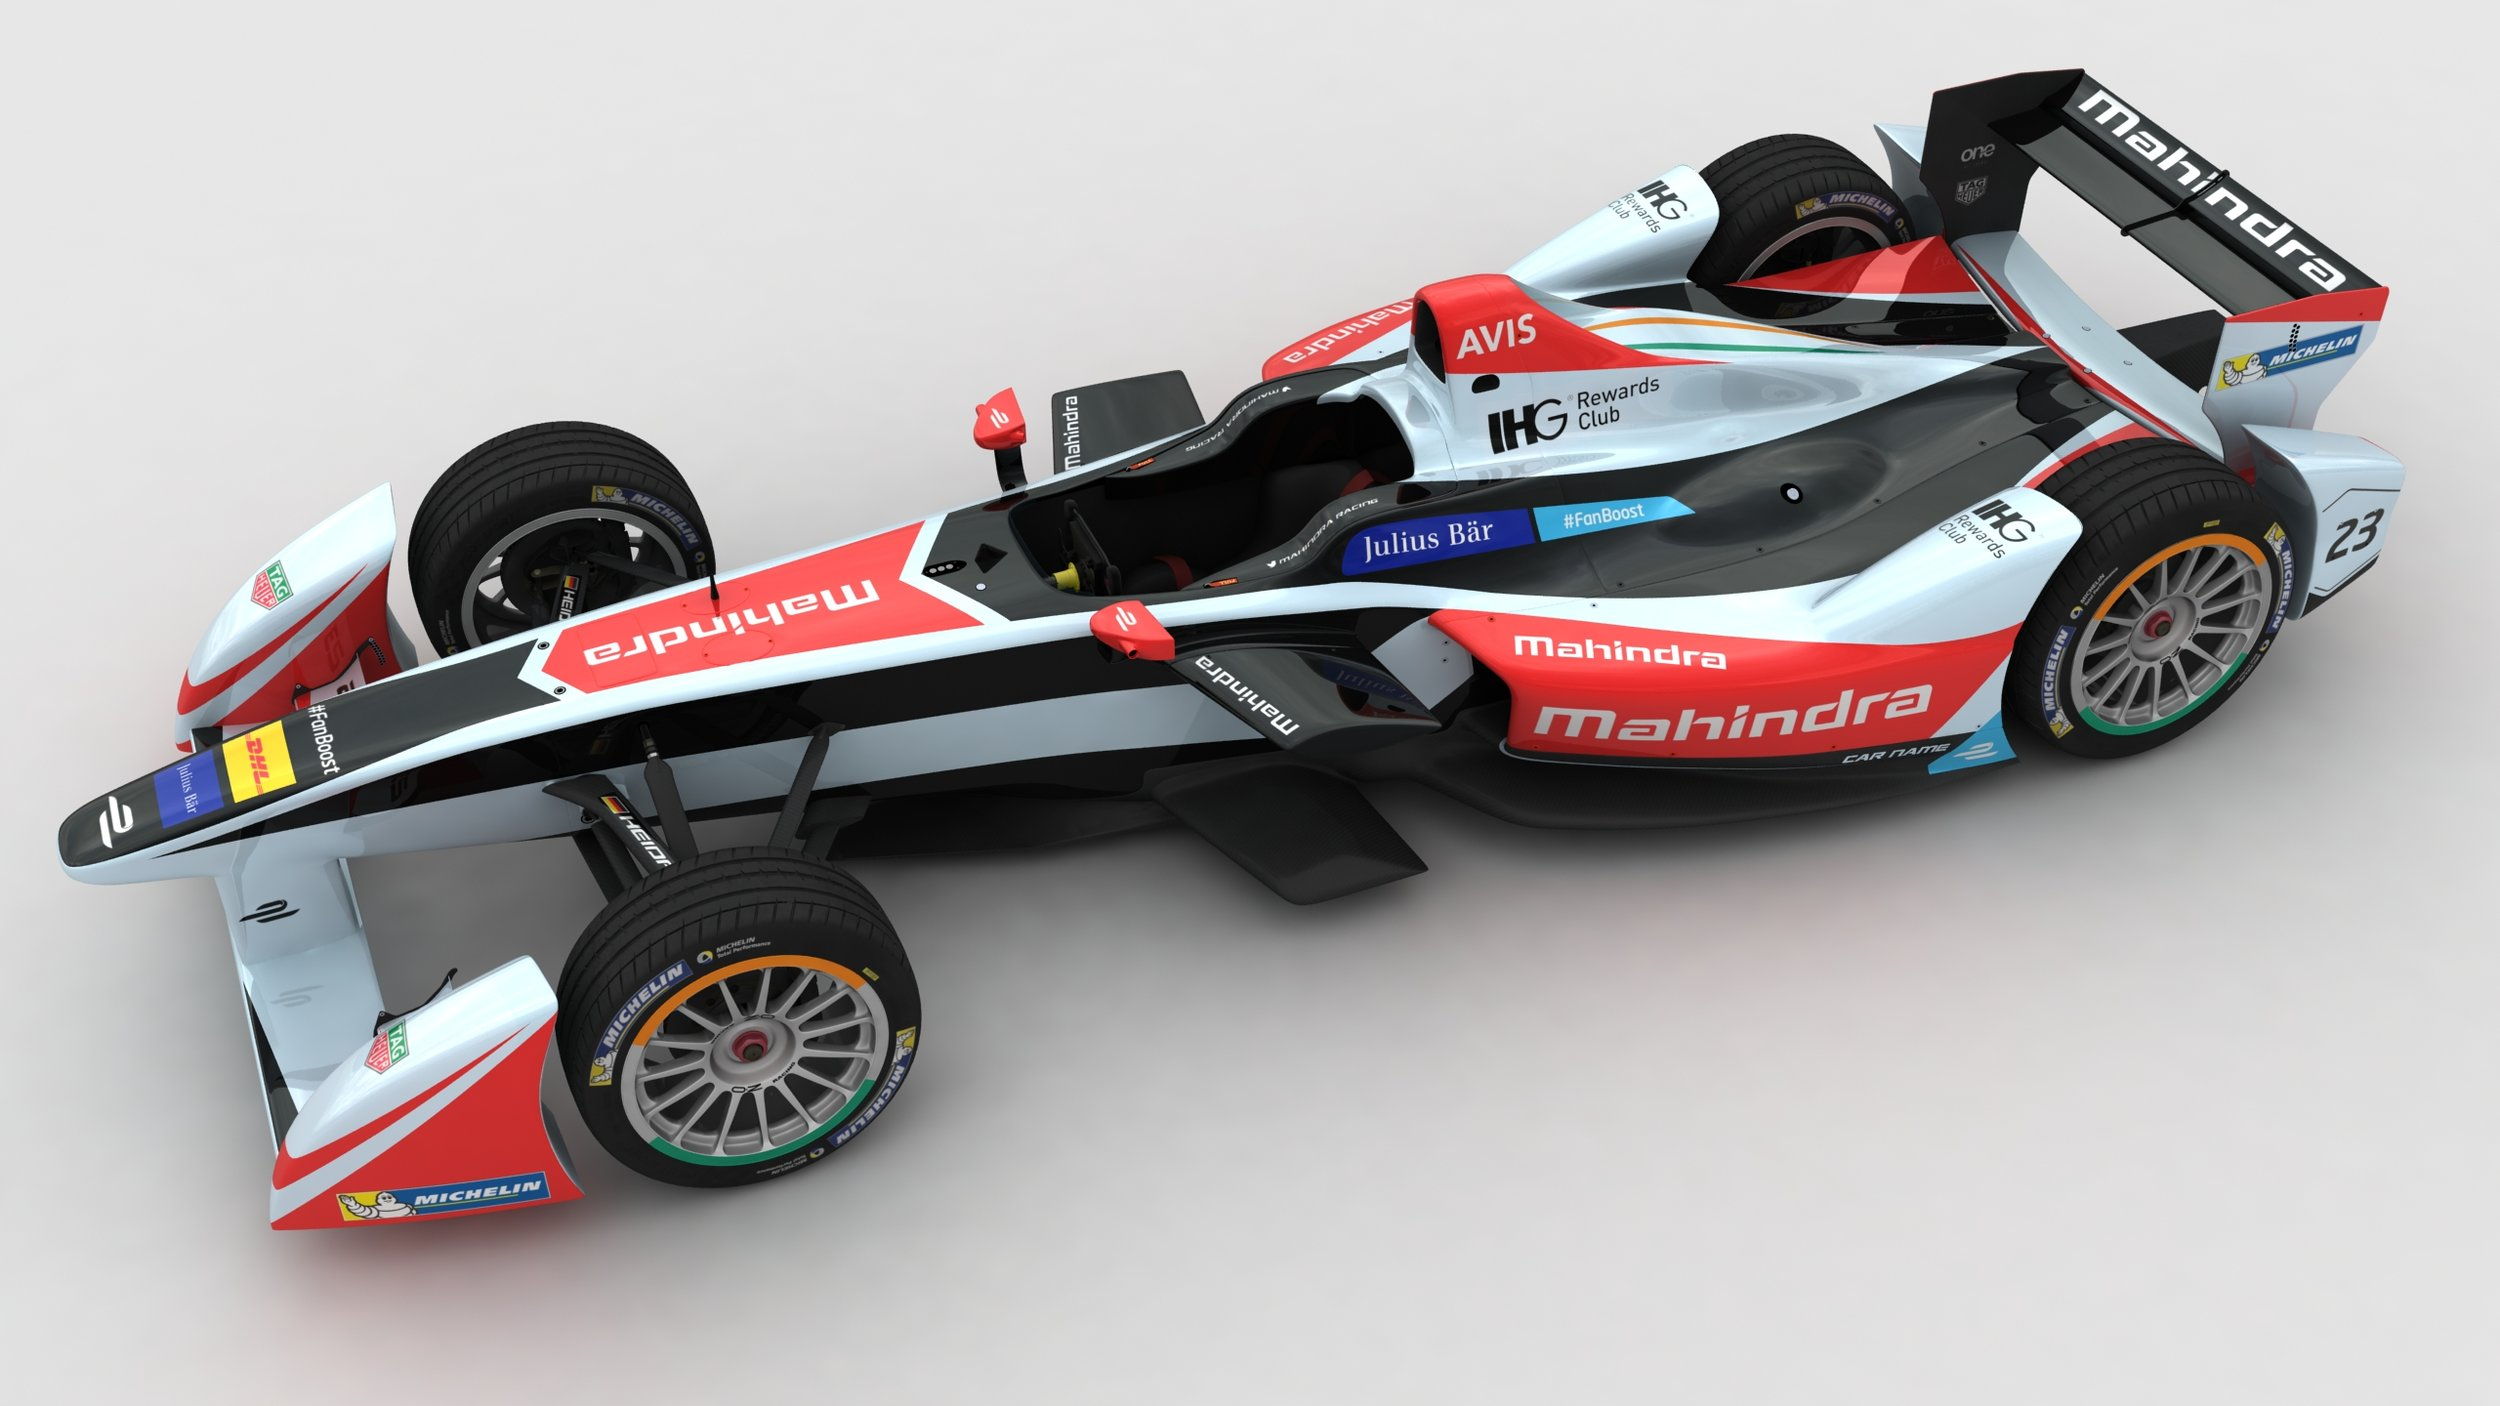 Mahindra progress7.jpg